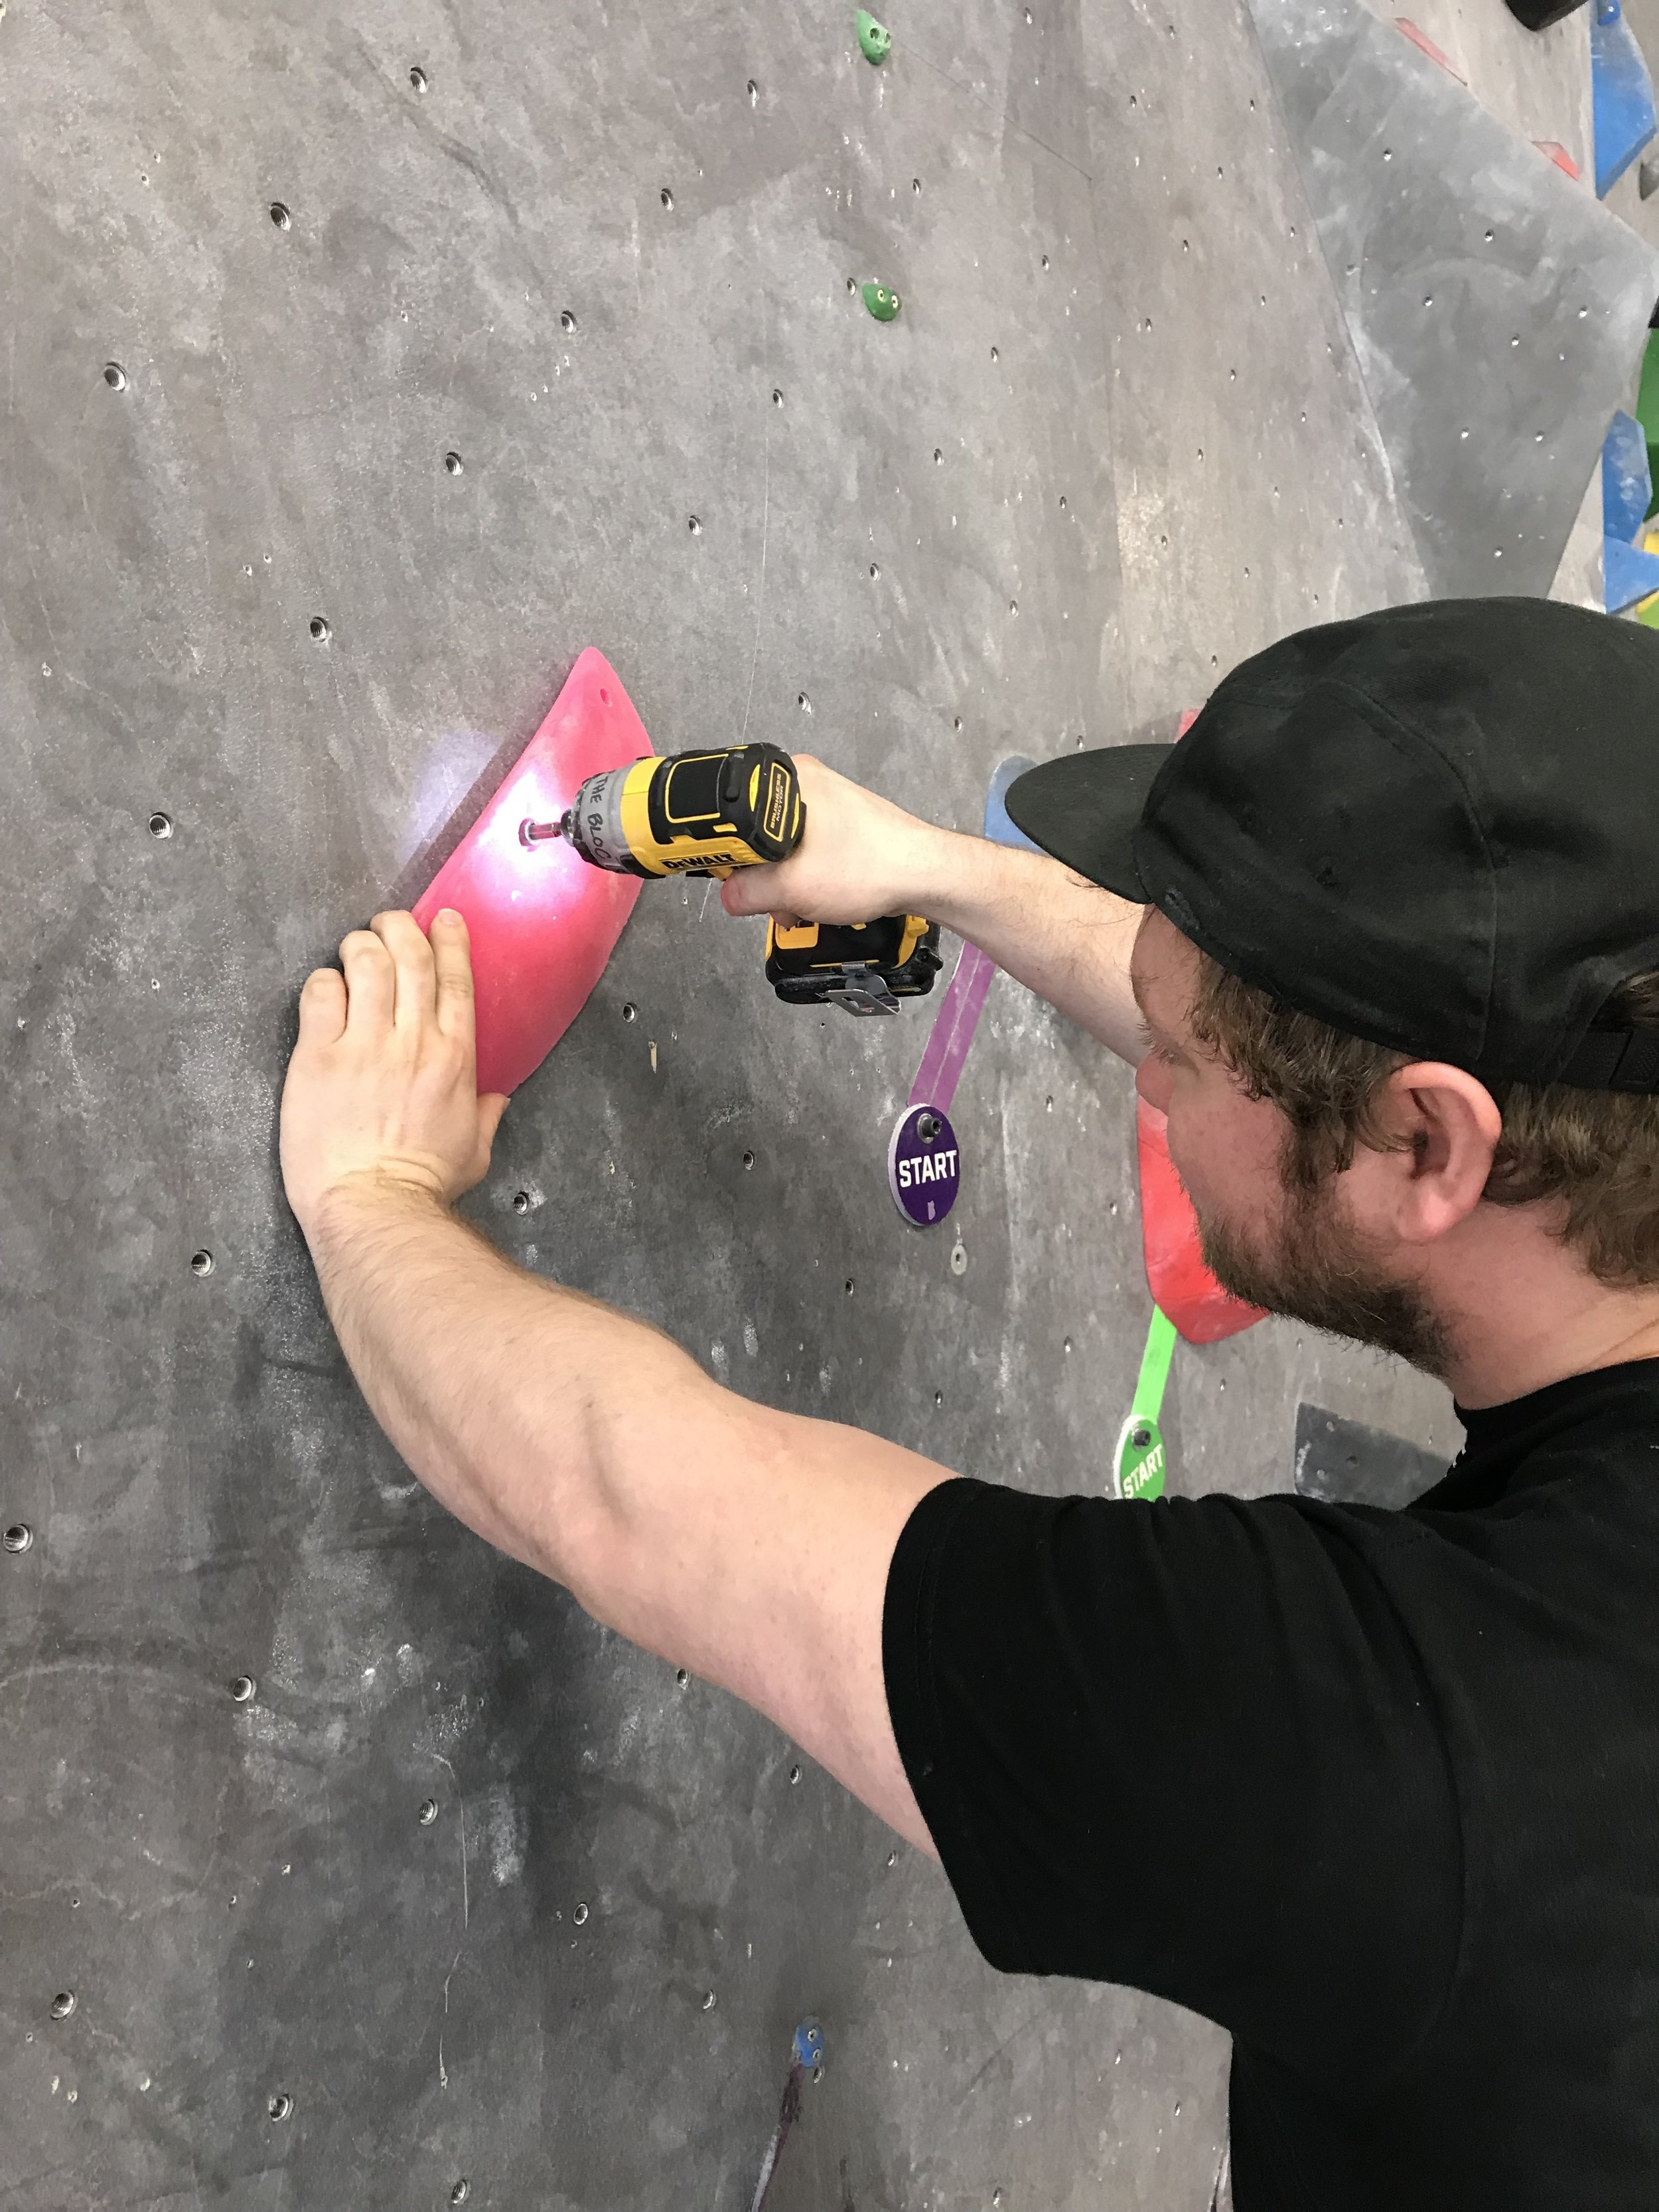 New problems are designed and built each week by our team of routesetters. Every new climb teaches new skills and builds new strength. -